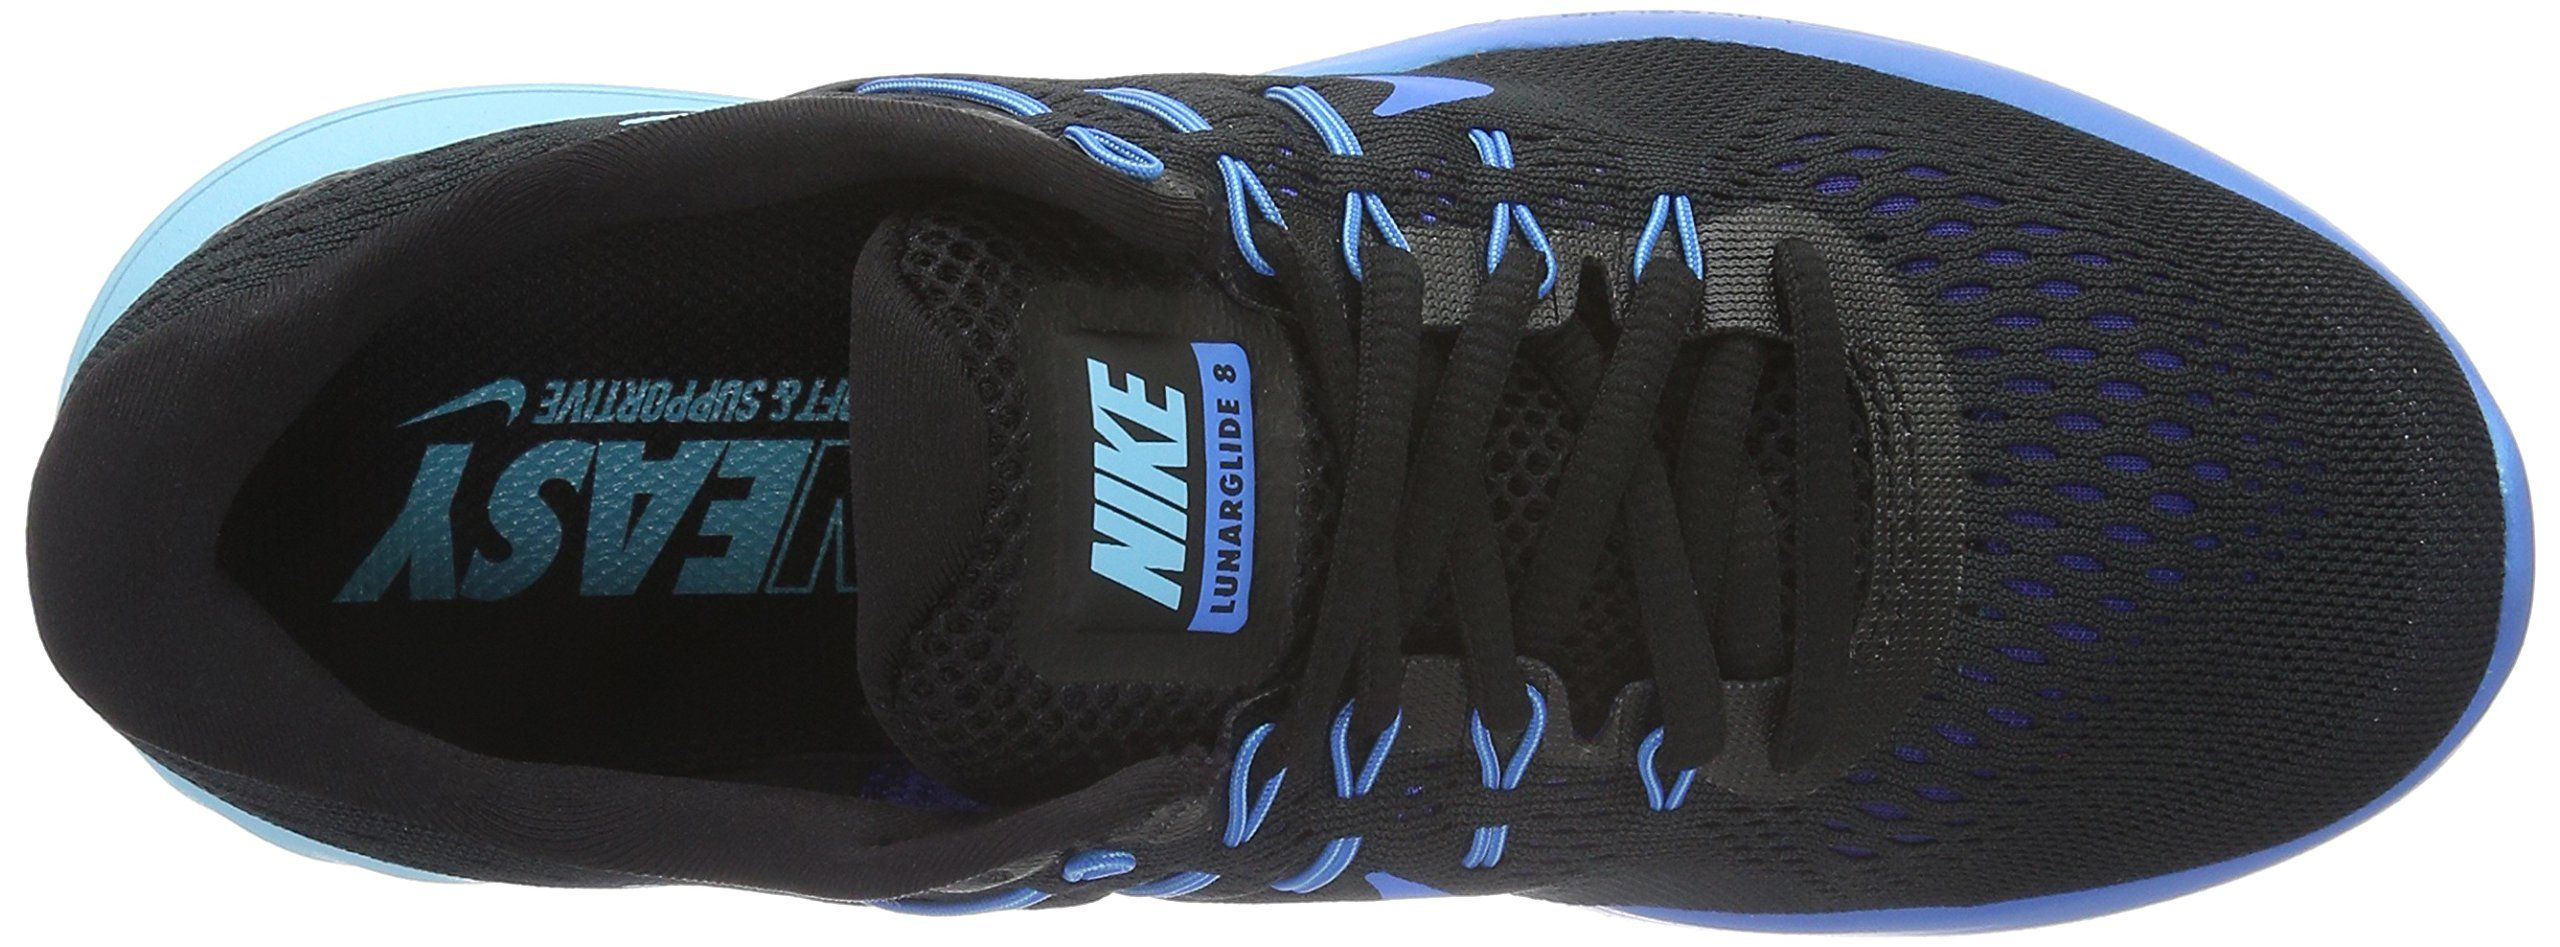 c69e5abbb Nike Womens LunarGlide 8 OC Running Shoe Black Multi Color Deep Royal Blue  7 BM US   You can get additional details at the image link.